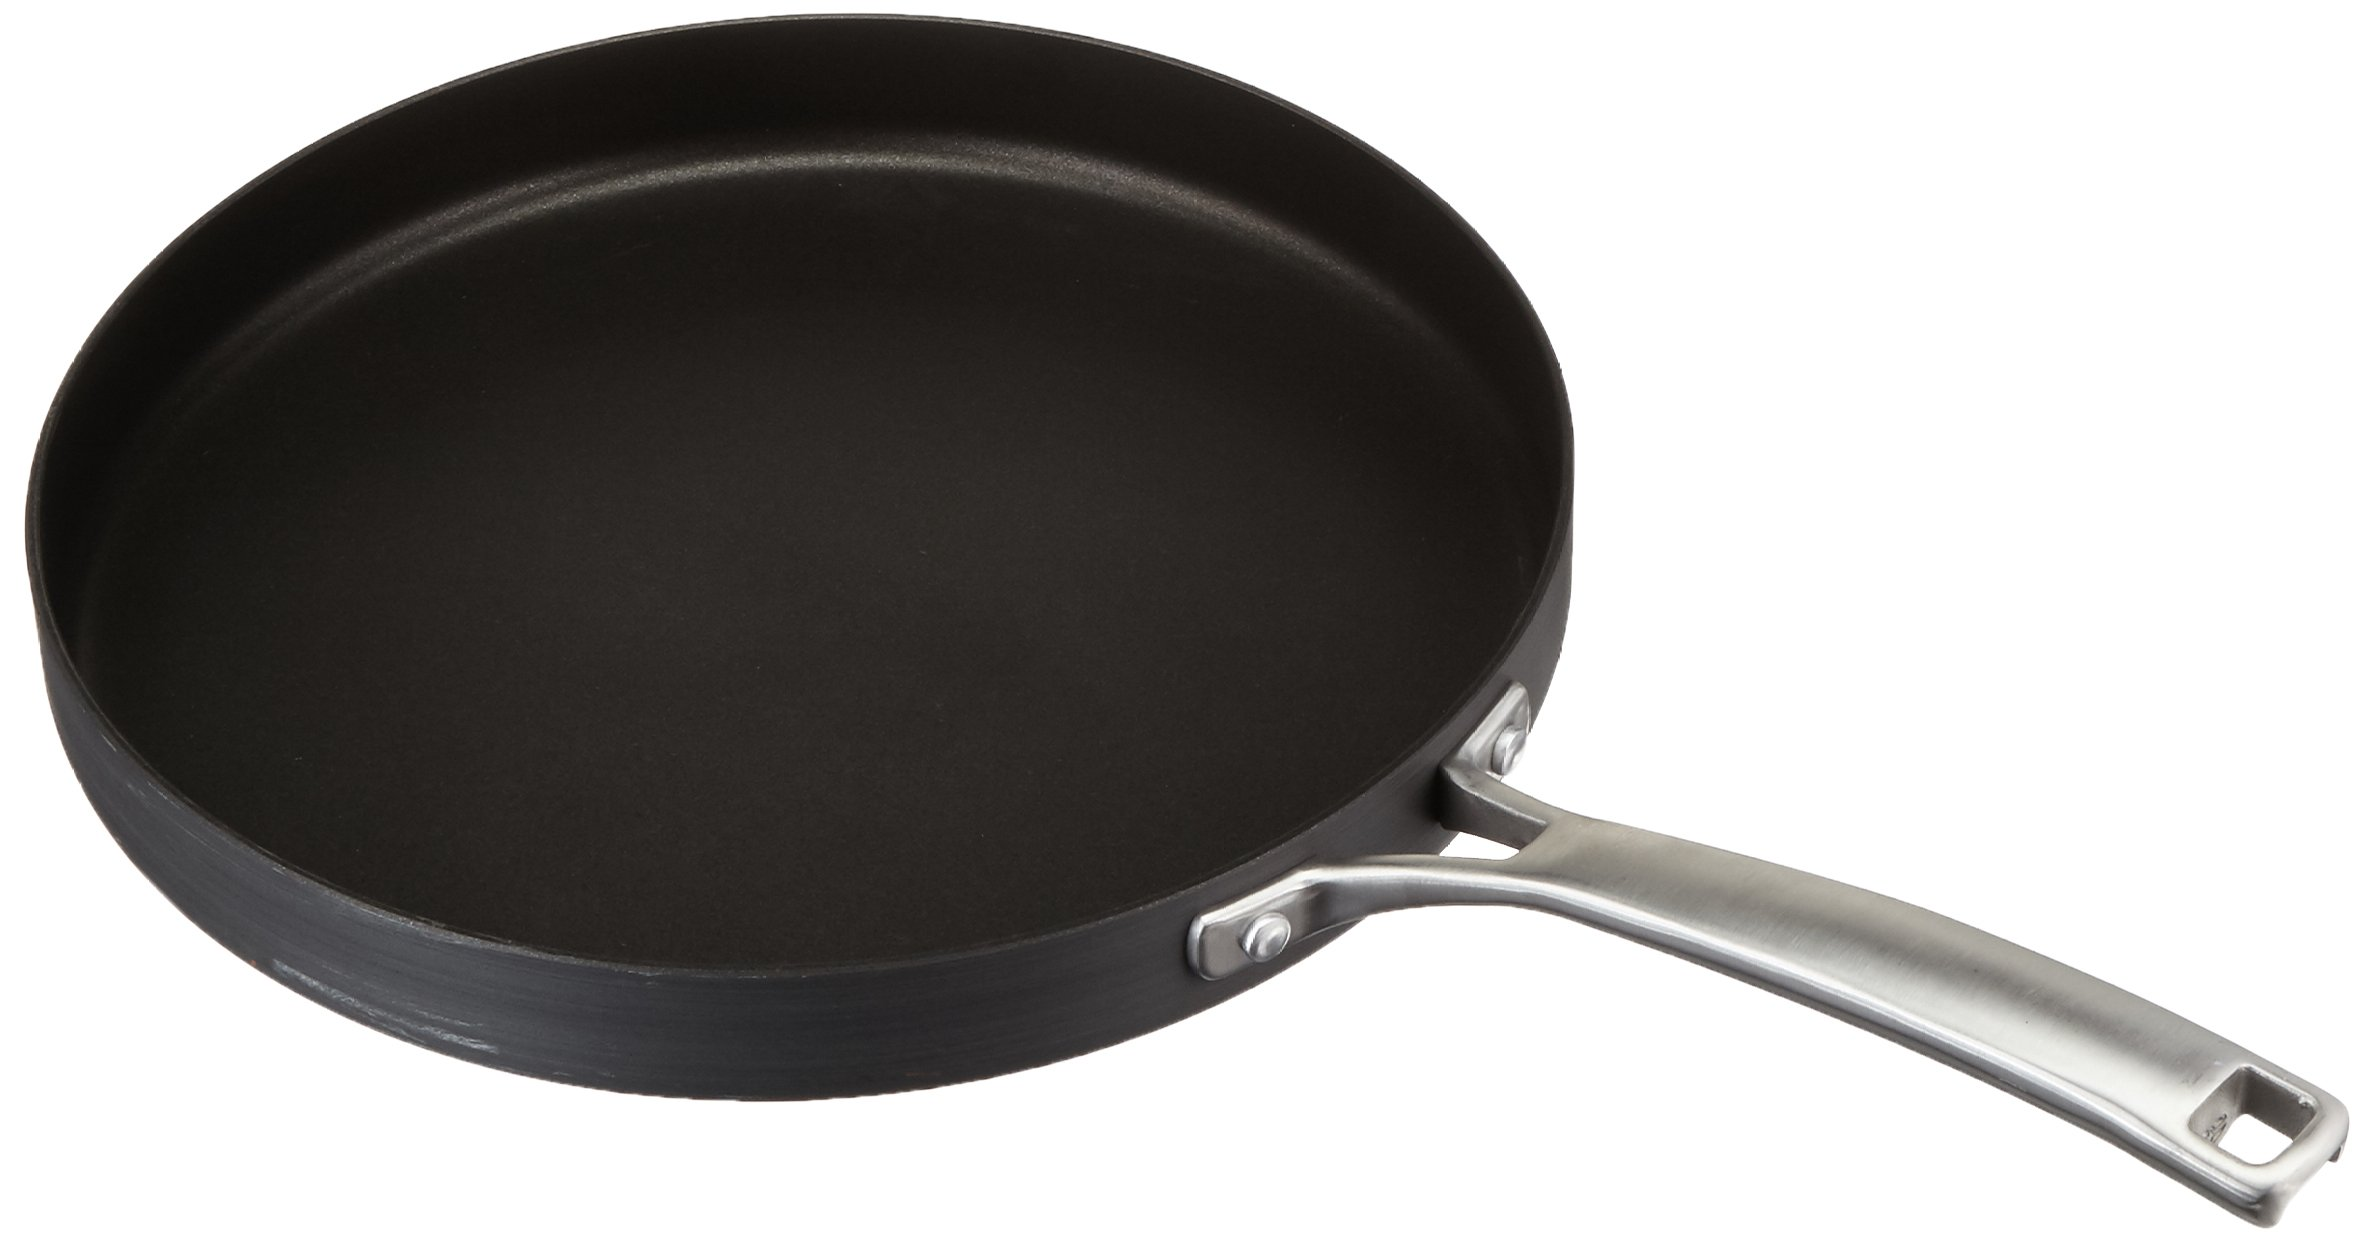 Calphalon 1943334 Classic Nonstick Round Griddle, 12'', Grey by Calphalon (Image #1)